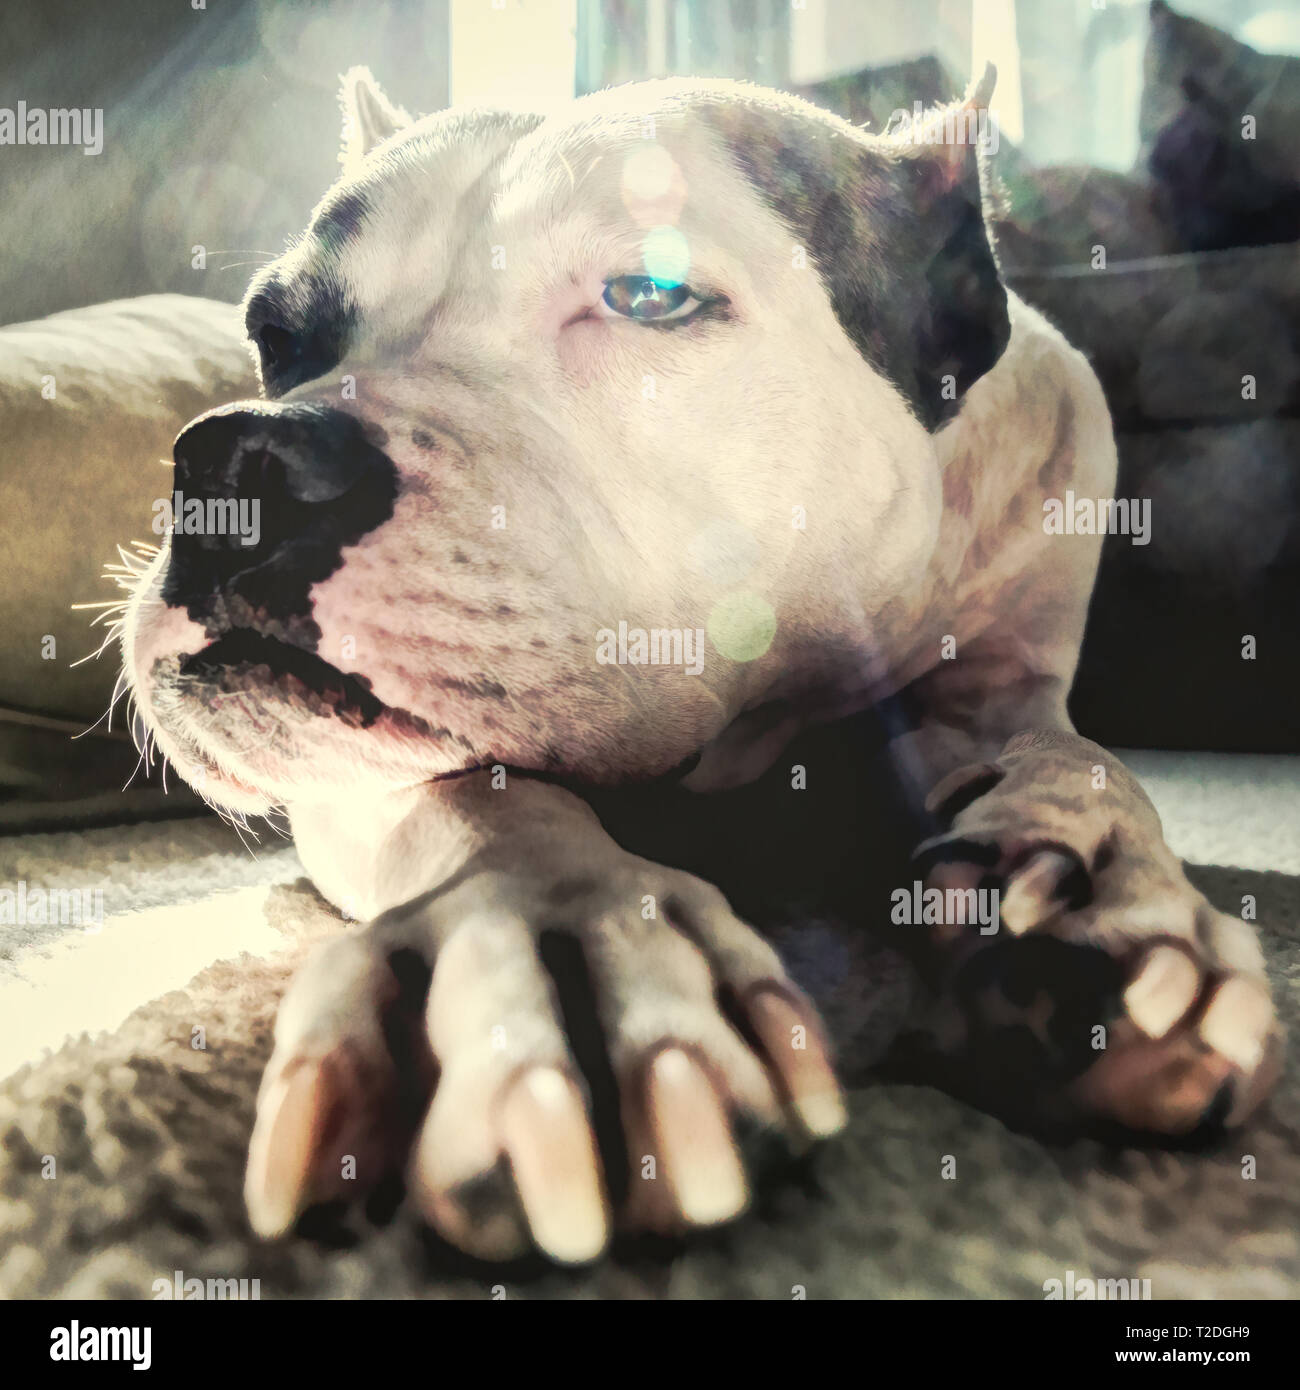 An old staffordshire terrier lays down in thought with a wistful look on his face - Stock Image